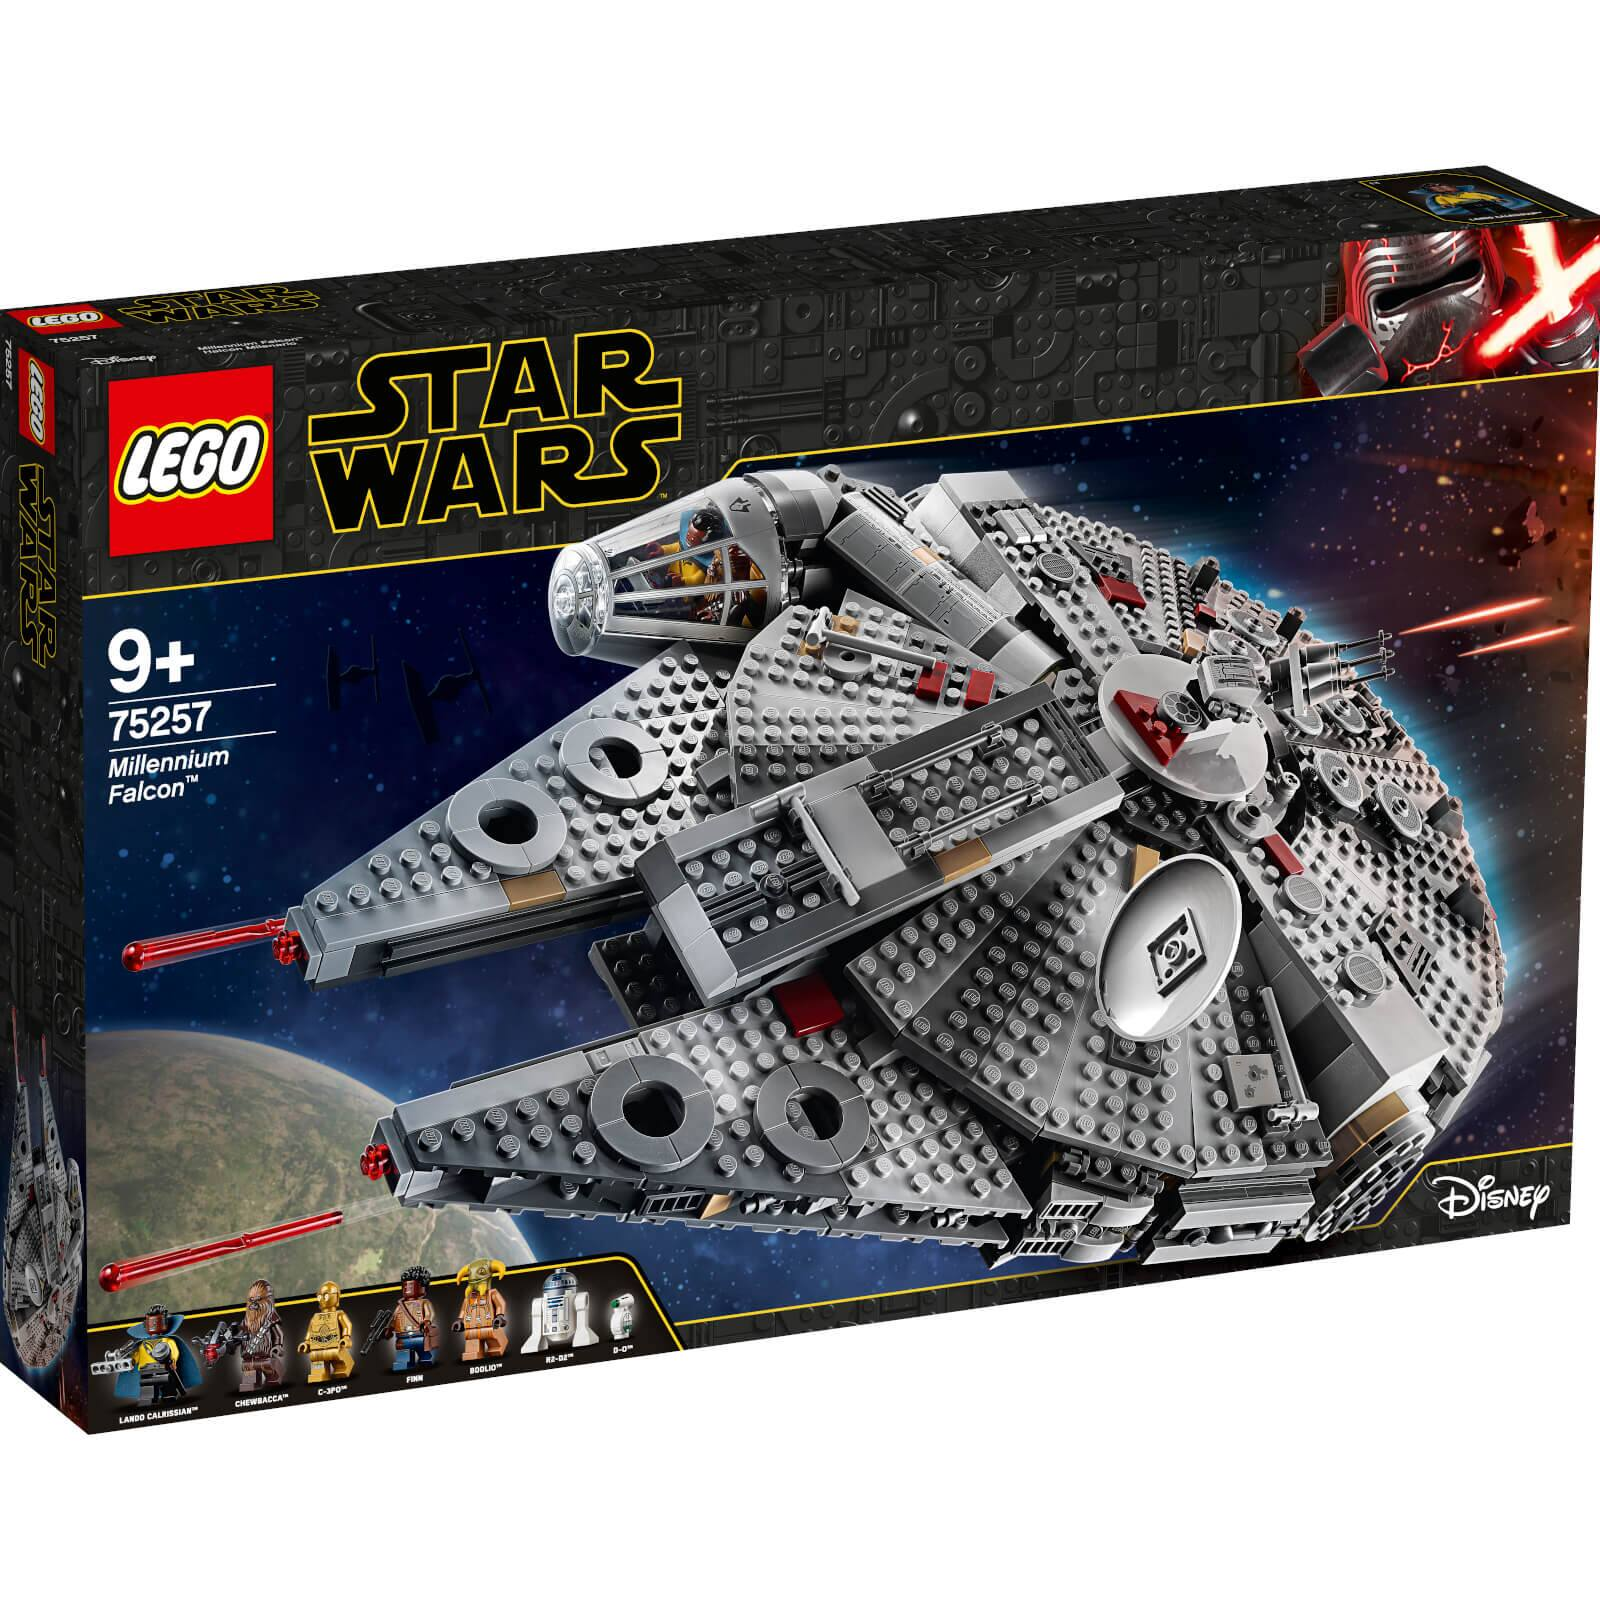 Lego Star Wars Millennium Falcon (75257) only $135 + Free Shipping at Zavvi